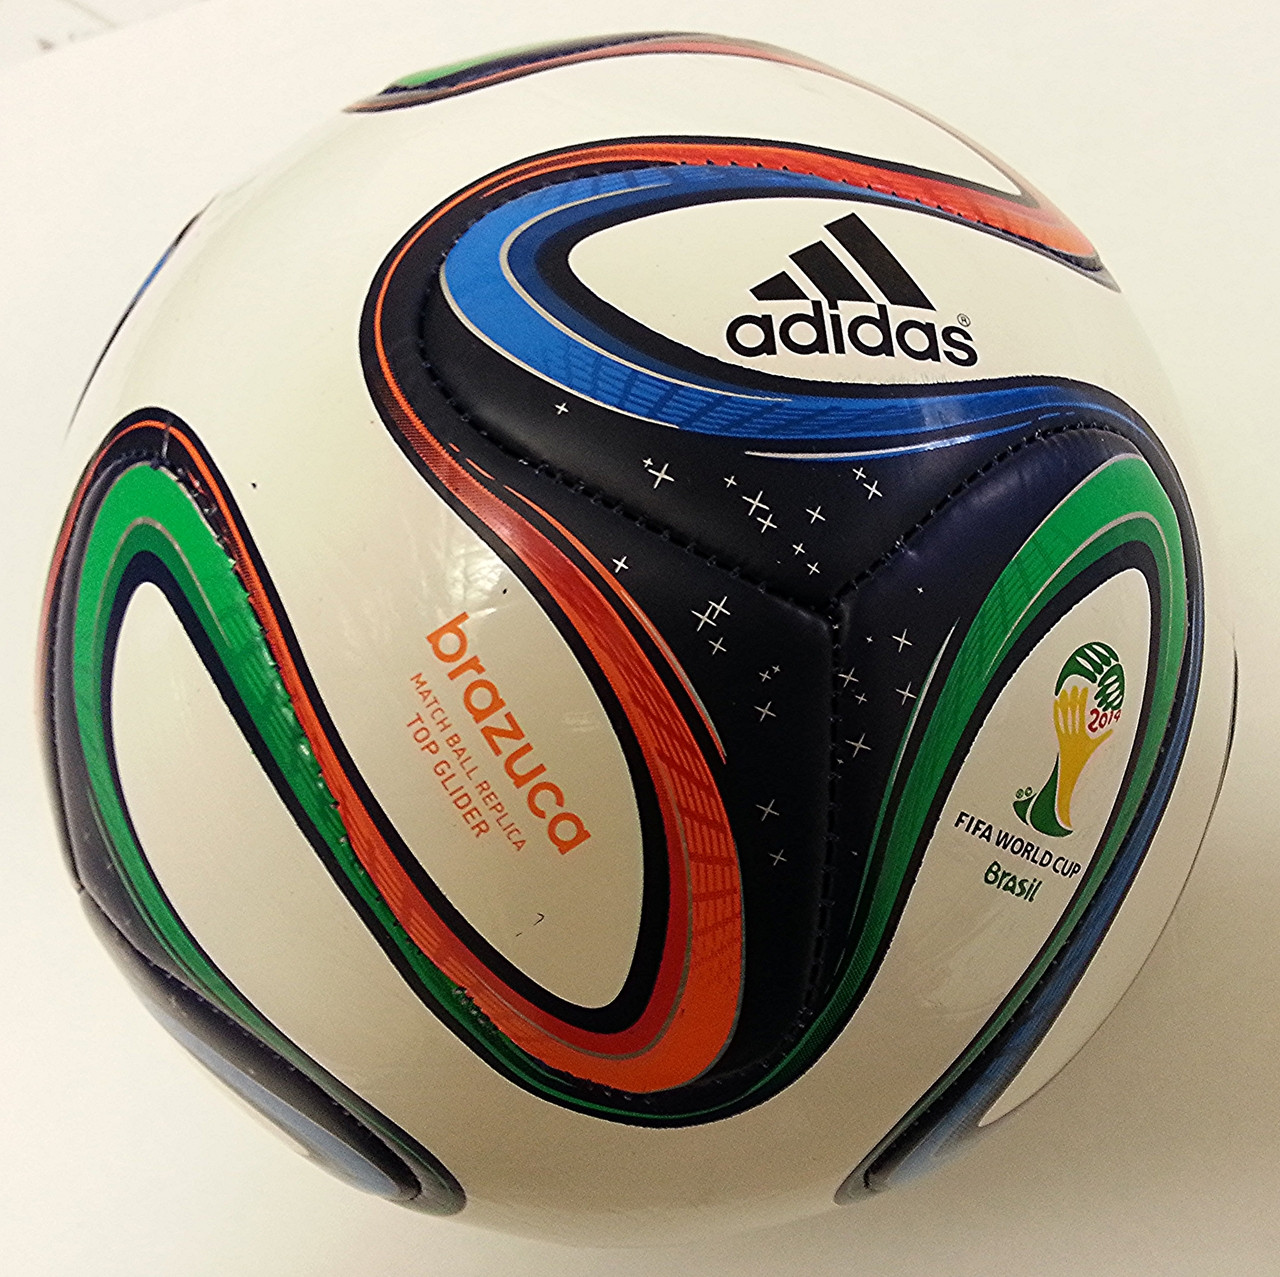 Adidas Brazuca 2014 Fifa World Cup Brazil Official Soccer Ball Top